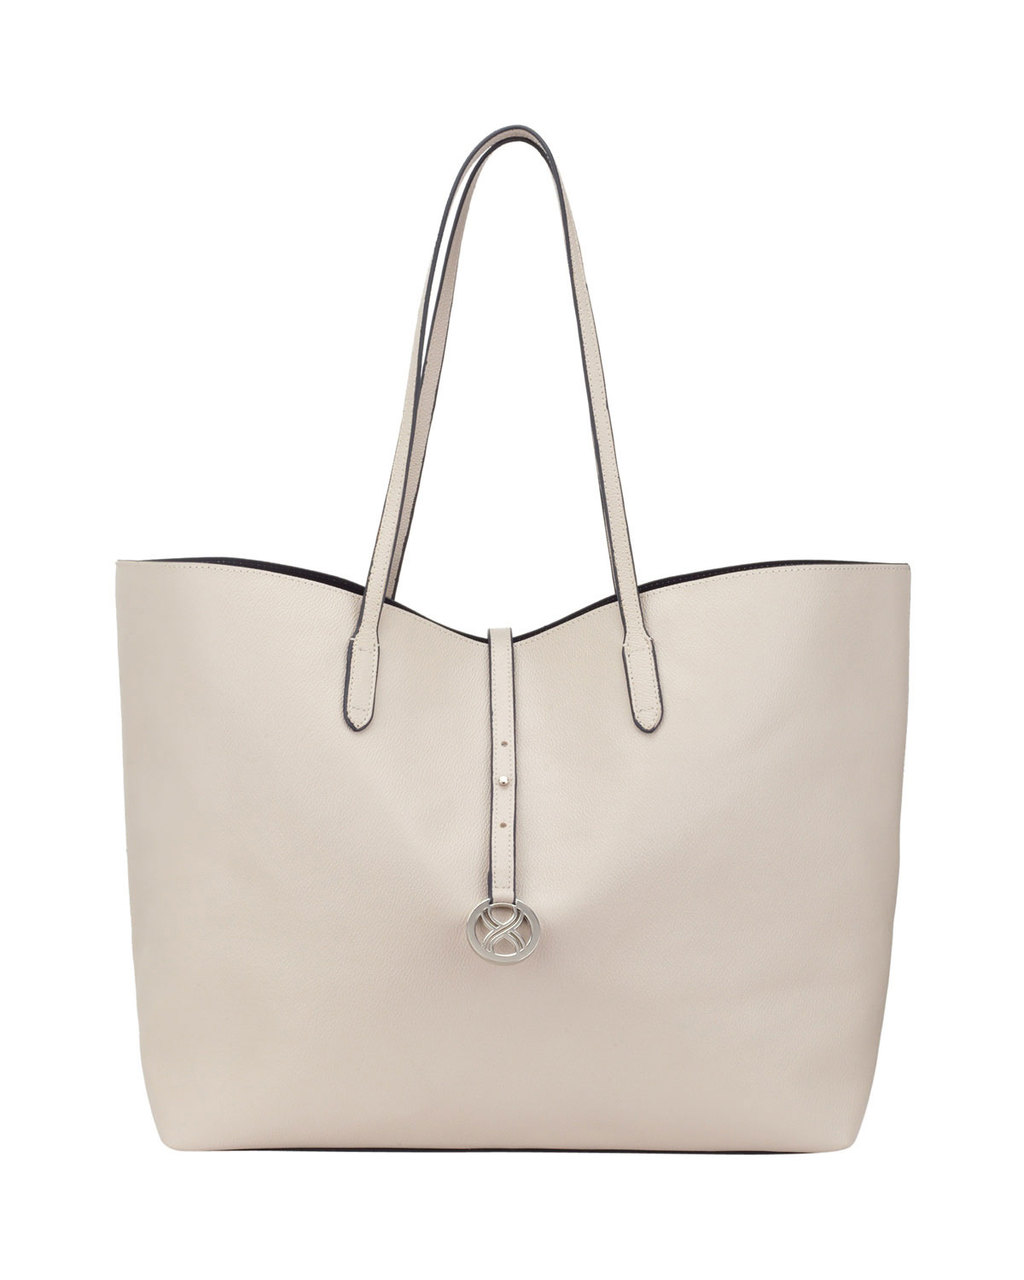 Cali Shopping Tote - predominant colour: light grey; occasions: casual, creative work; type of pattern: standard; style: tote; length: handle; size: standard; material: leather; pattern: plain; finish: plain; season: s/s 2016; wardrobe: investment